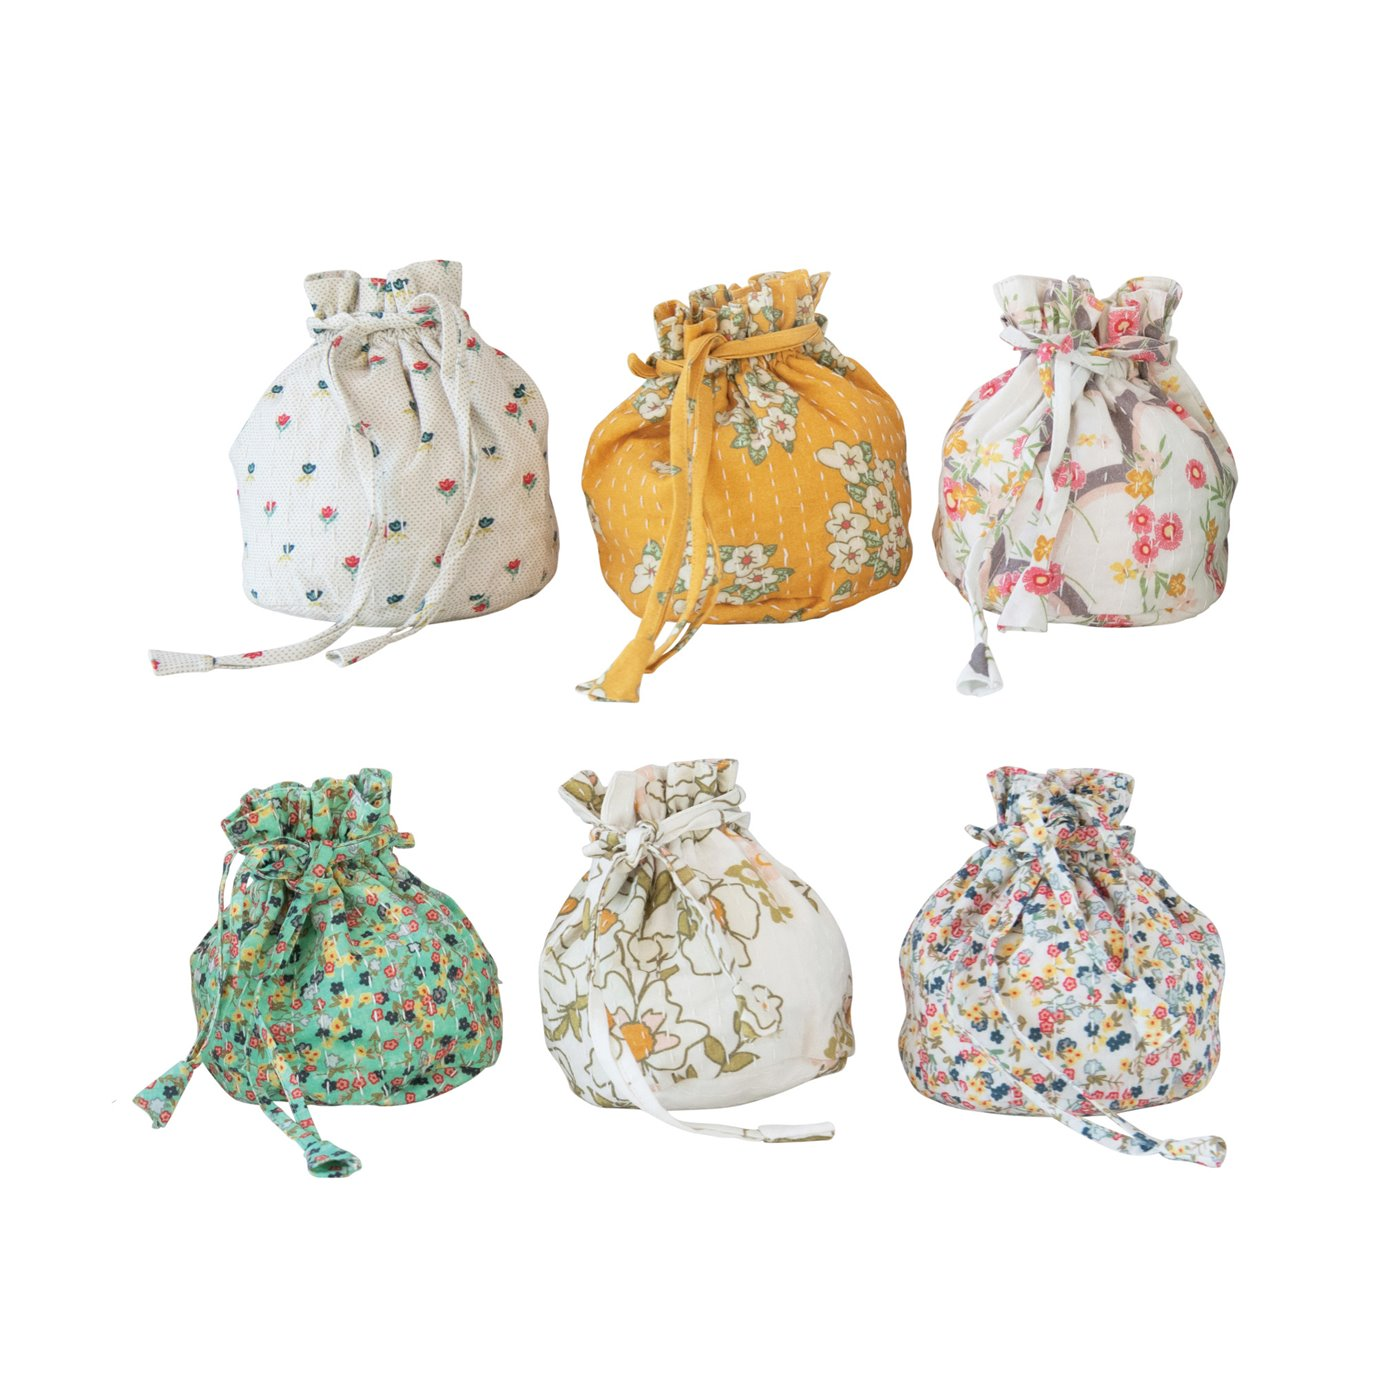 Stitched Cotton Agra Drawstring Pouch, 6 Styles ©